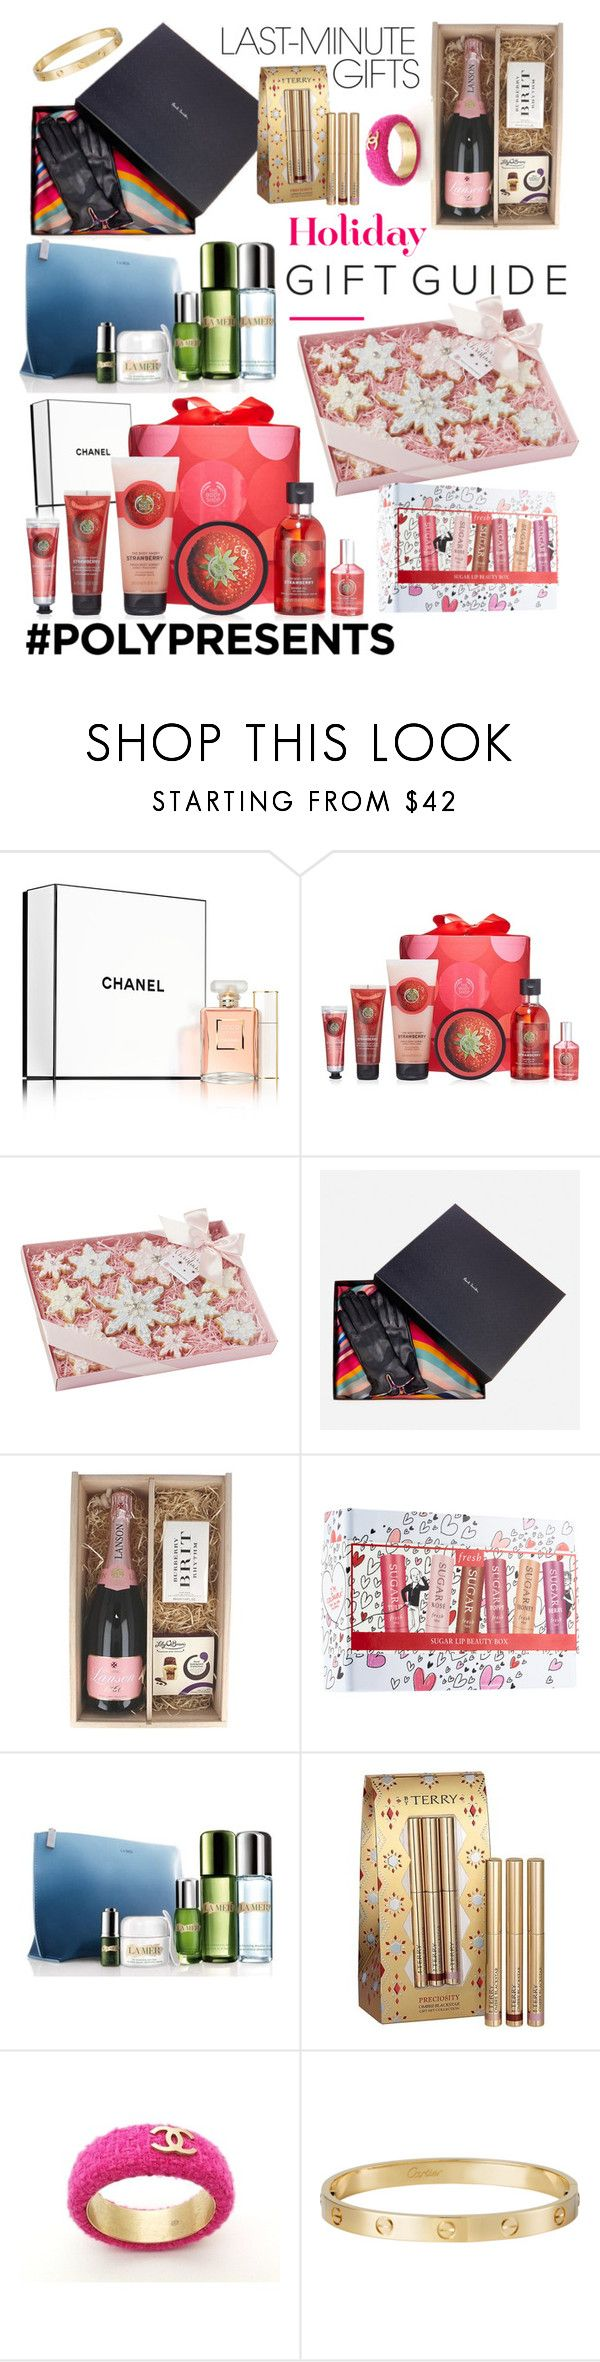 """""""#PolyPresents: Last-Minute Gifts"""" by akritiarora7 ❤ liked on Polyvore featuring beauty, Sephora Collection, The Body Shop, Paul Smith, Piper-Heidsieck, Boxfresh, La Mer, By Terry, Chanel and Cartier"""